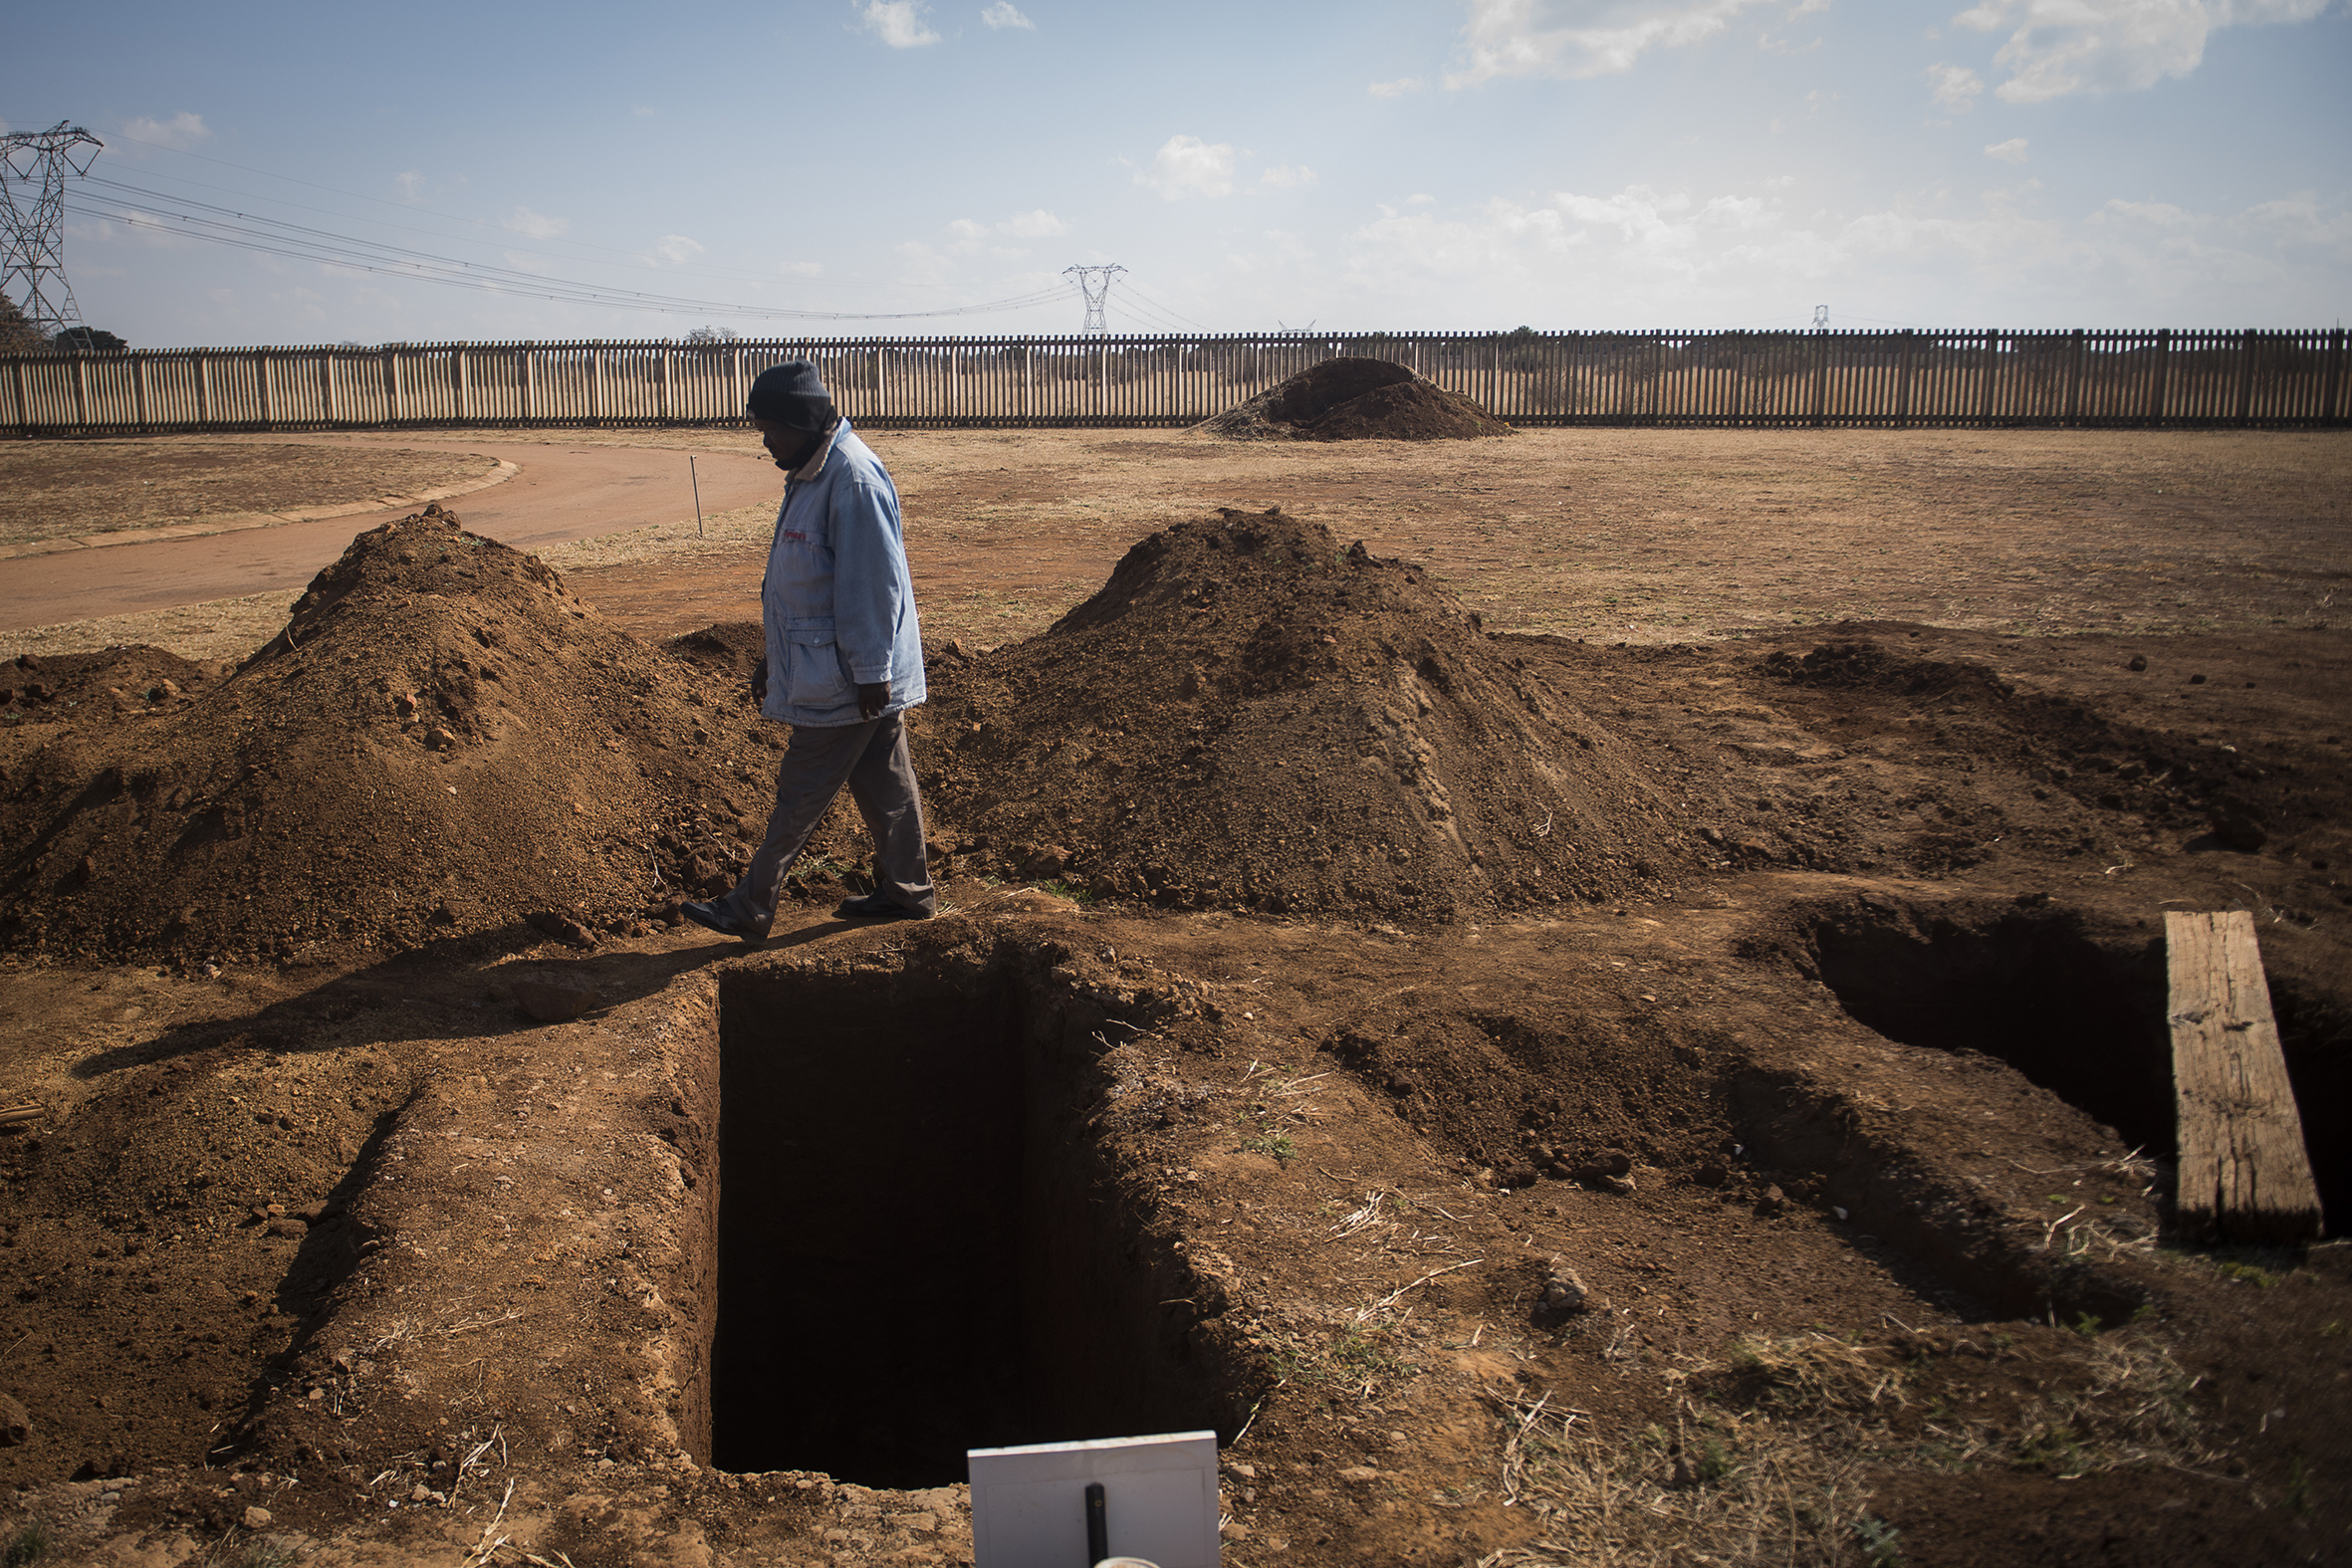 A worker walks past a freshly-dug graves at the Honingnestkrans Cemetery, North of Pretoria, South Africa, July 9, 2020.